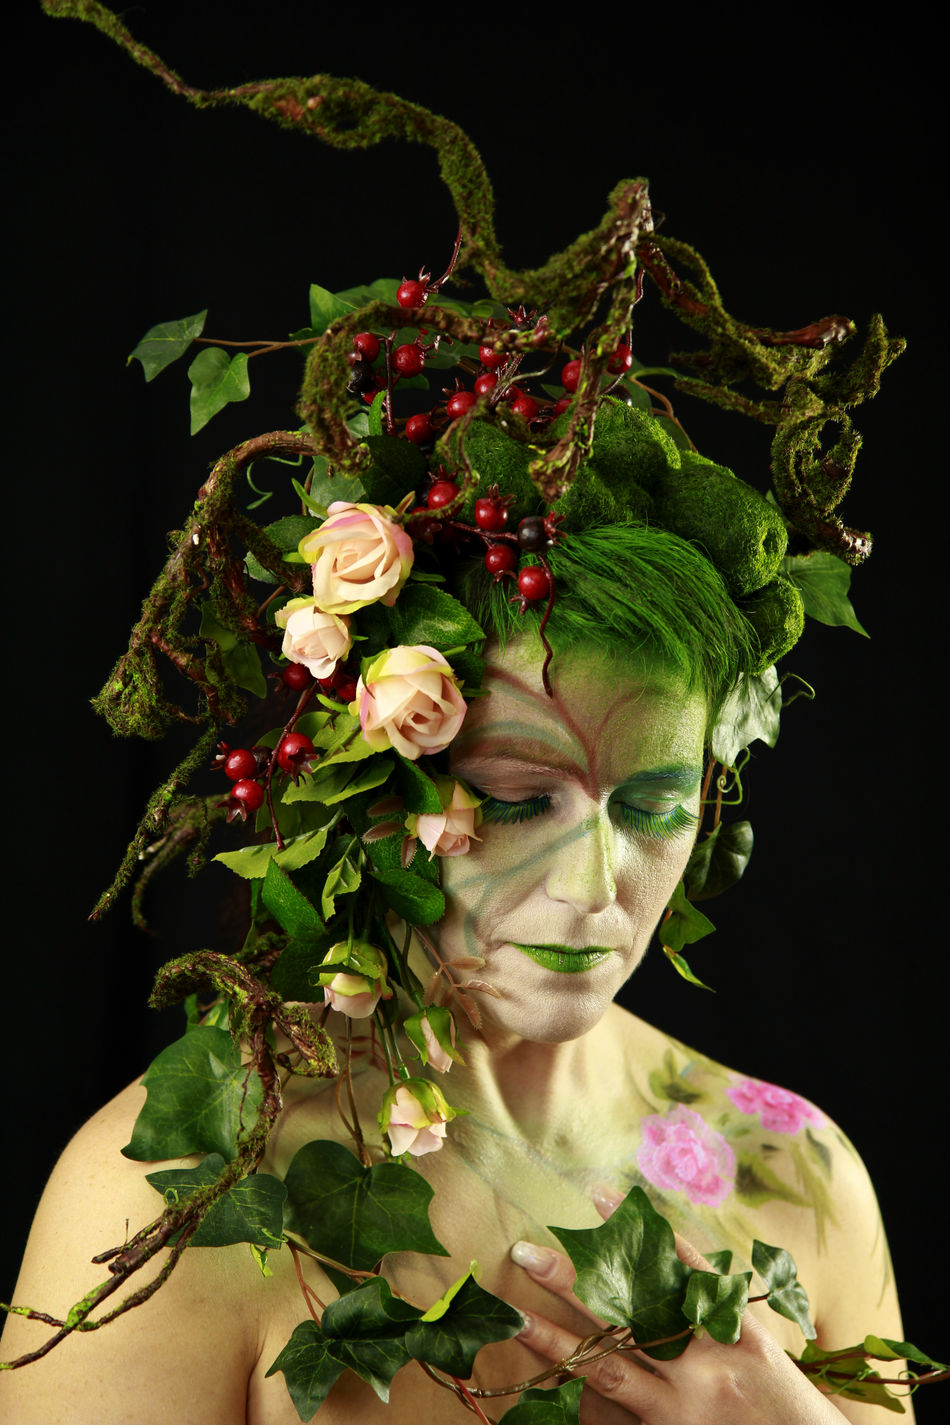 Bodypainting Branches Branches And Leaves Elf Elf Fantasy Fair Extreme Makeup Fairy Fairytale  Fashion Hair Green Green Hair Hipstamatic Ivy Leaves Moss Nature Rose Hip Roses